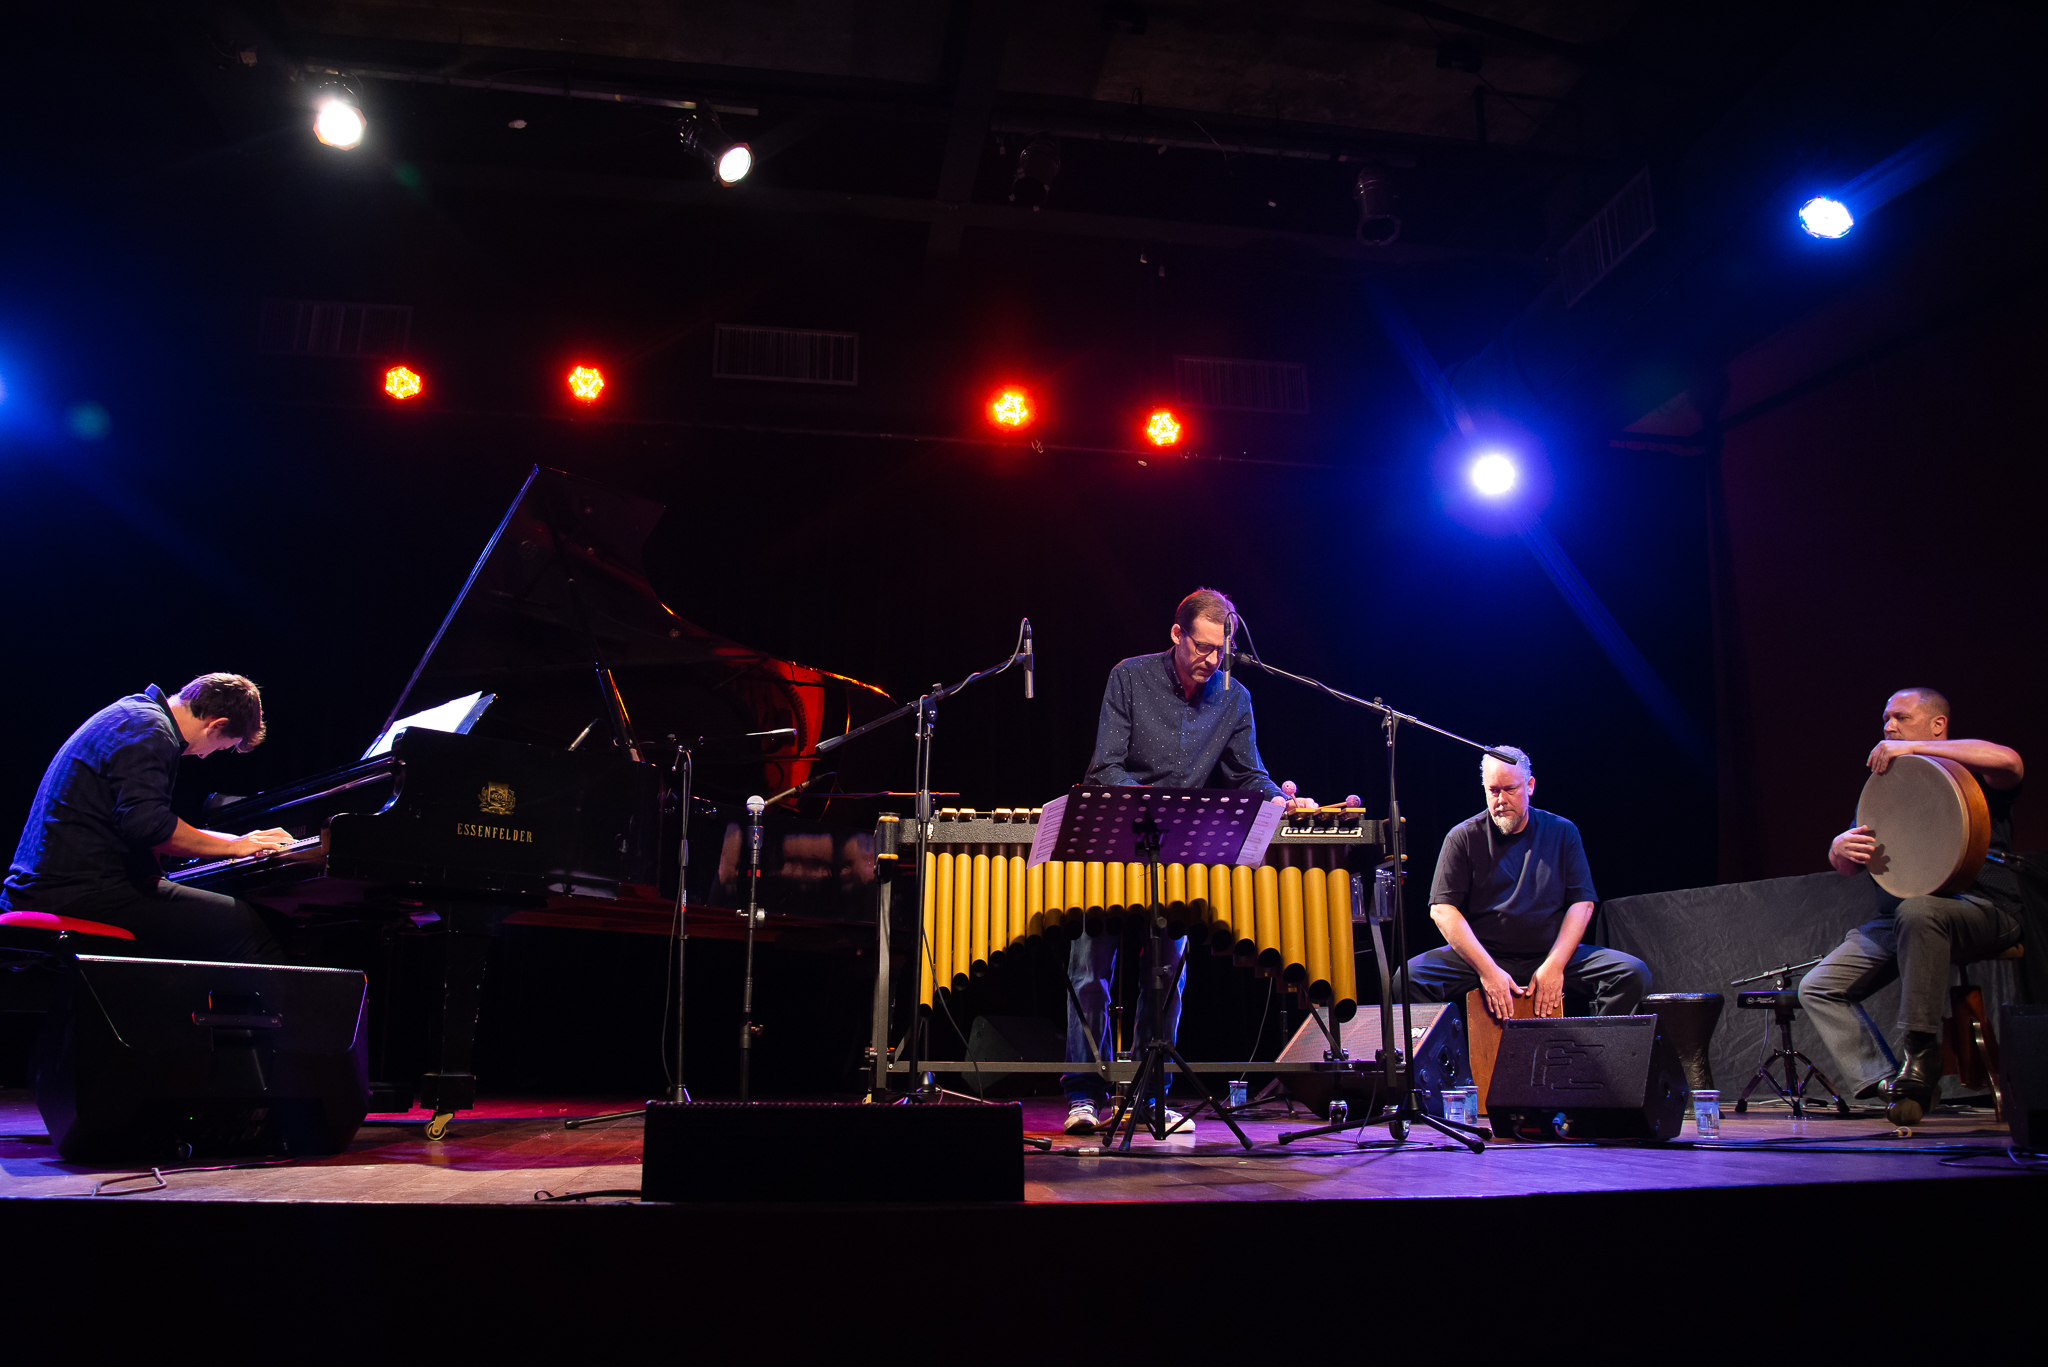 Austin & Randy sitting in with Duo Clavis, 2FIP FESTIVAL INTERNACIONAL DE PERCUSSÃO DE CURITIBA, July 19th, 2018.  photo: alex figueiredo